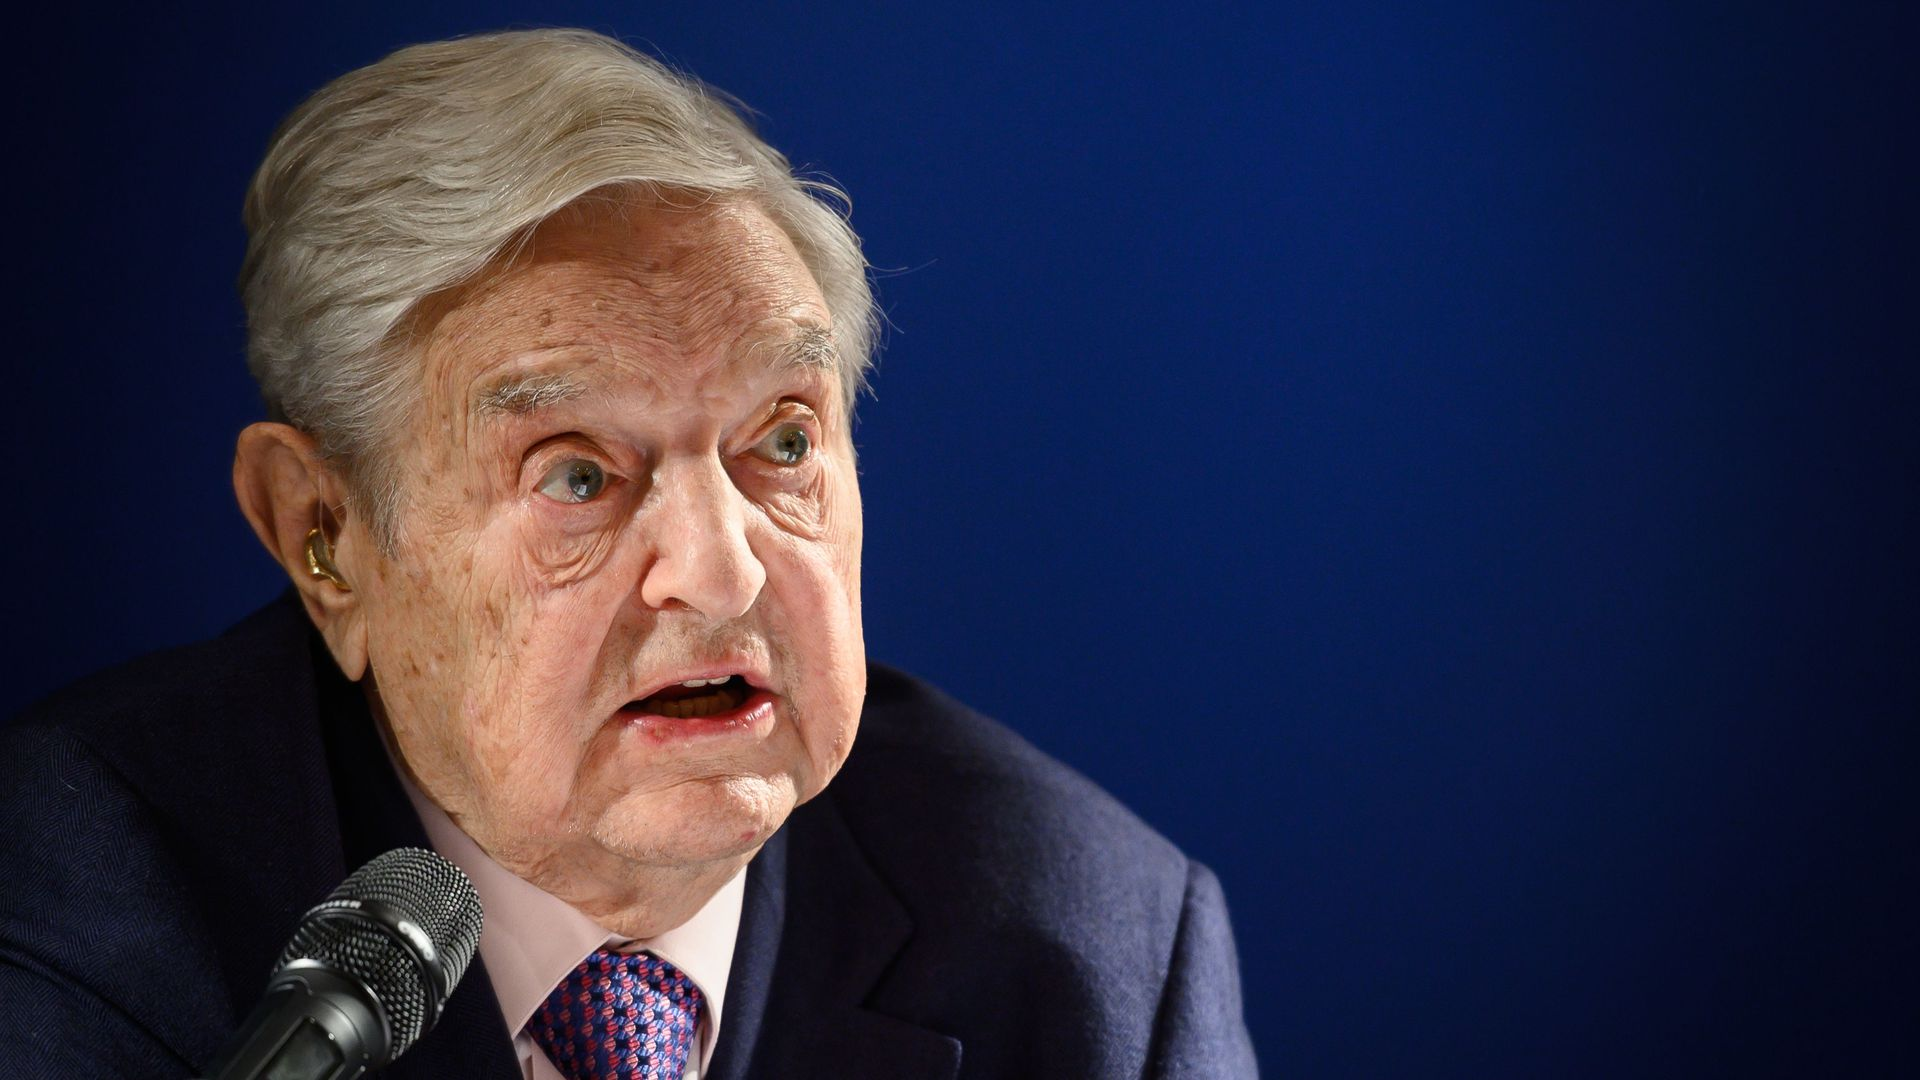 US investor and philanthropist George Soros speaks into a microphone.